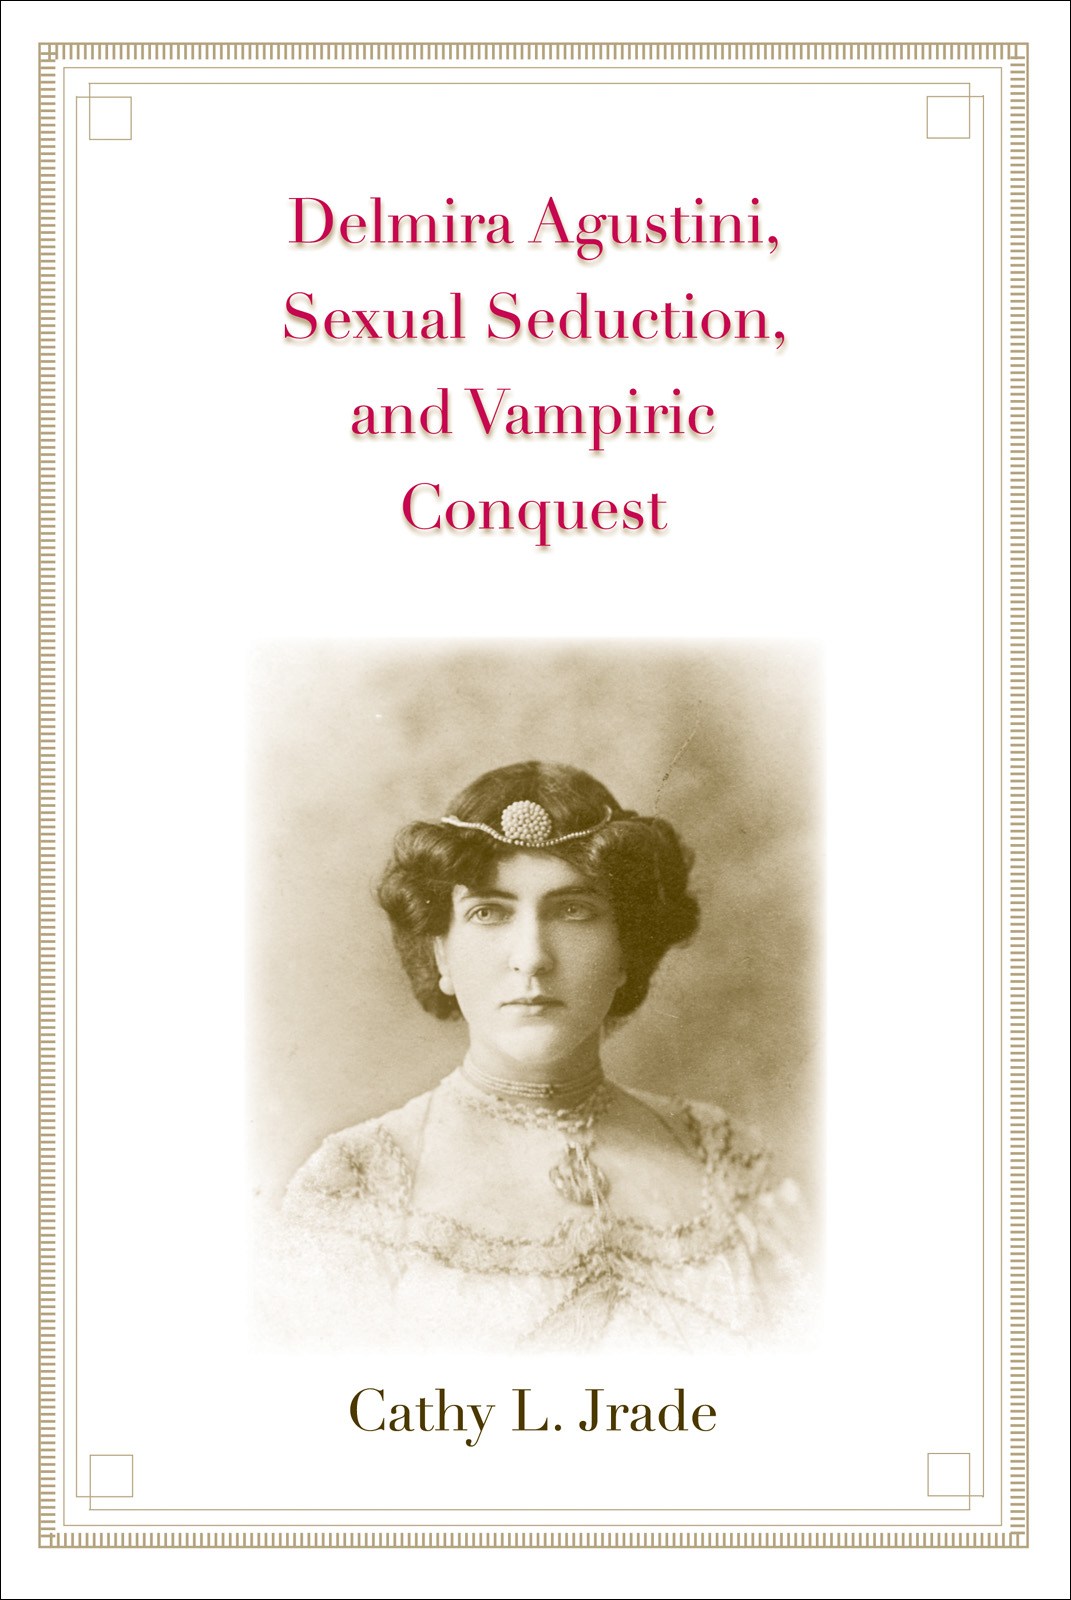 Delmira Agustini, Sexual Seduction, and Vampiric Conquest